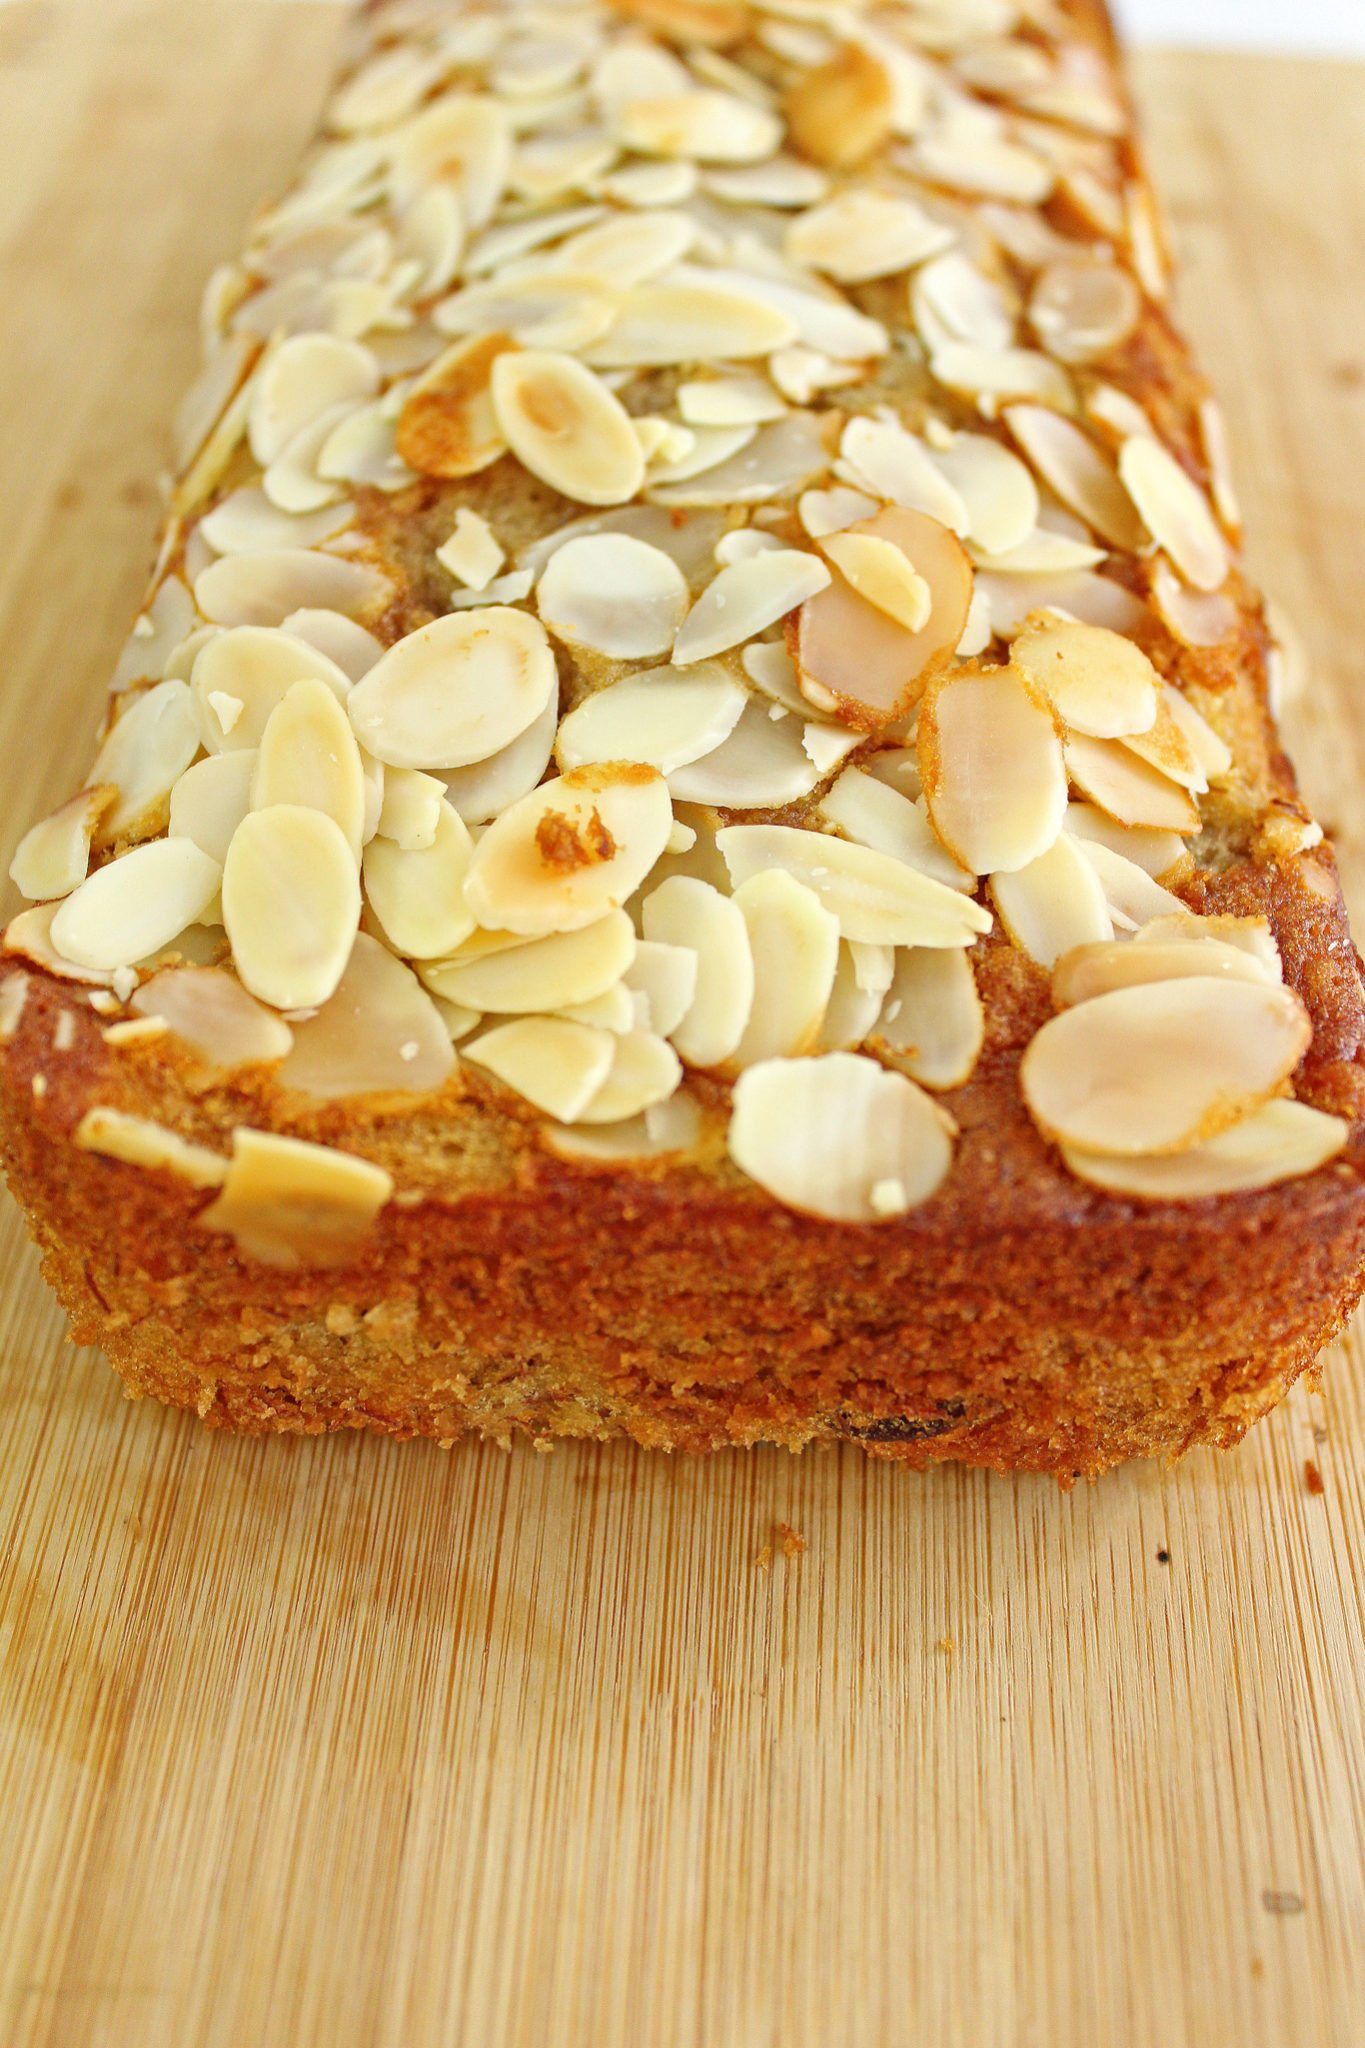 American Banana Almond Bread